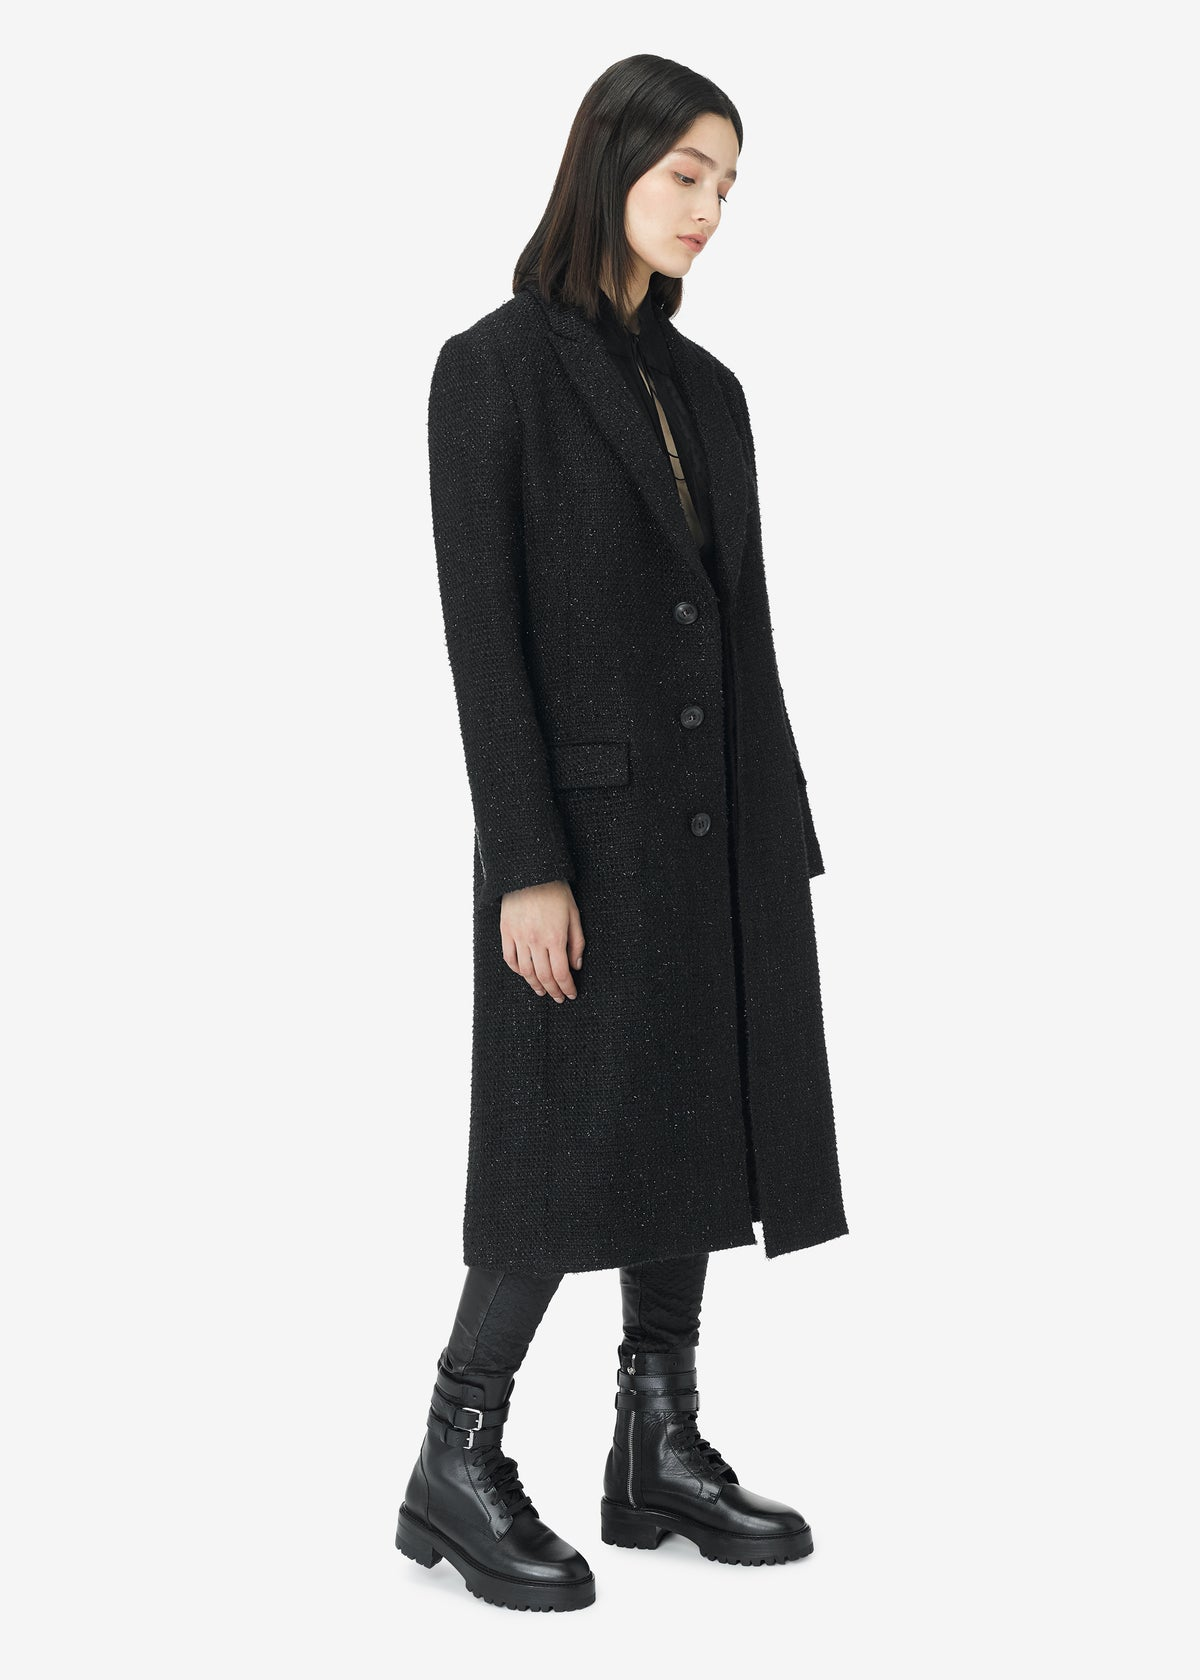 files/W_Outerwear_Boucle_Fitted_Coat_Blk_035.jpg